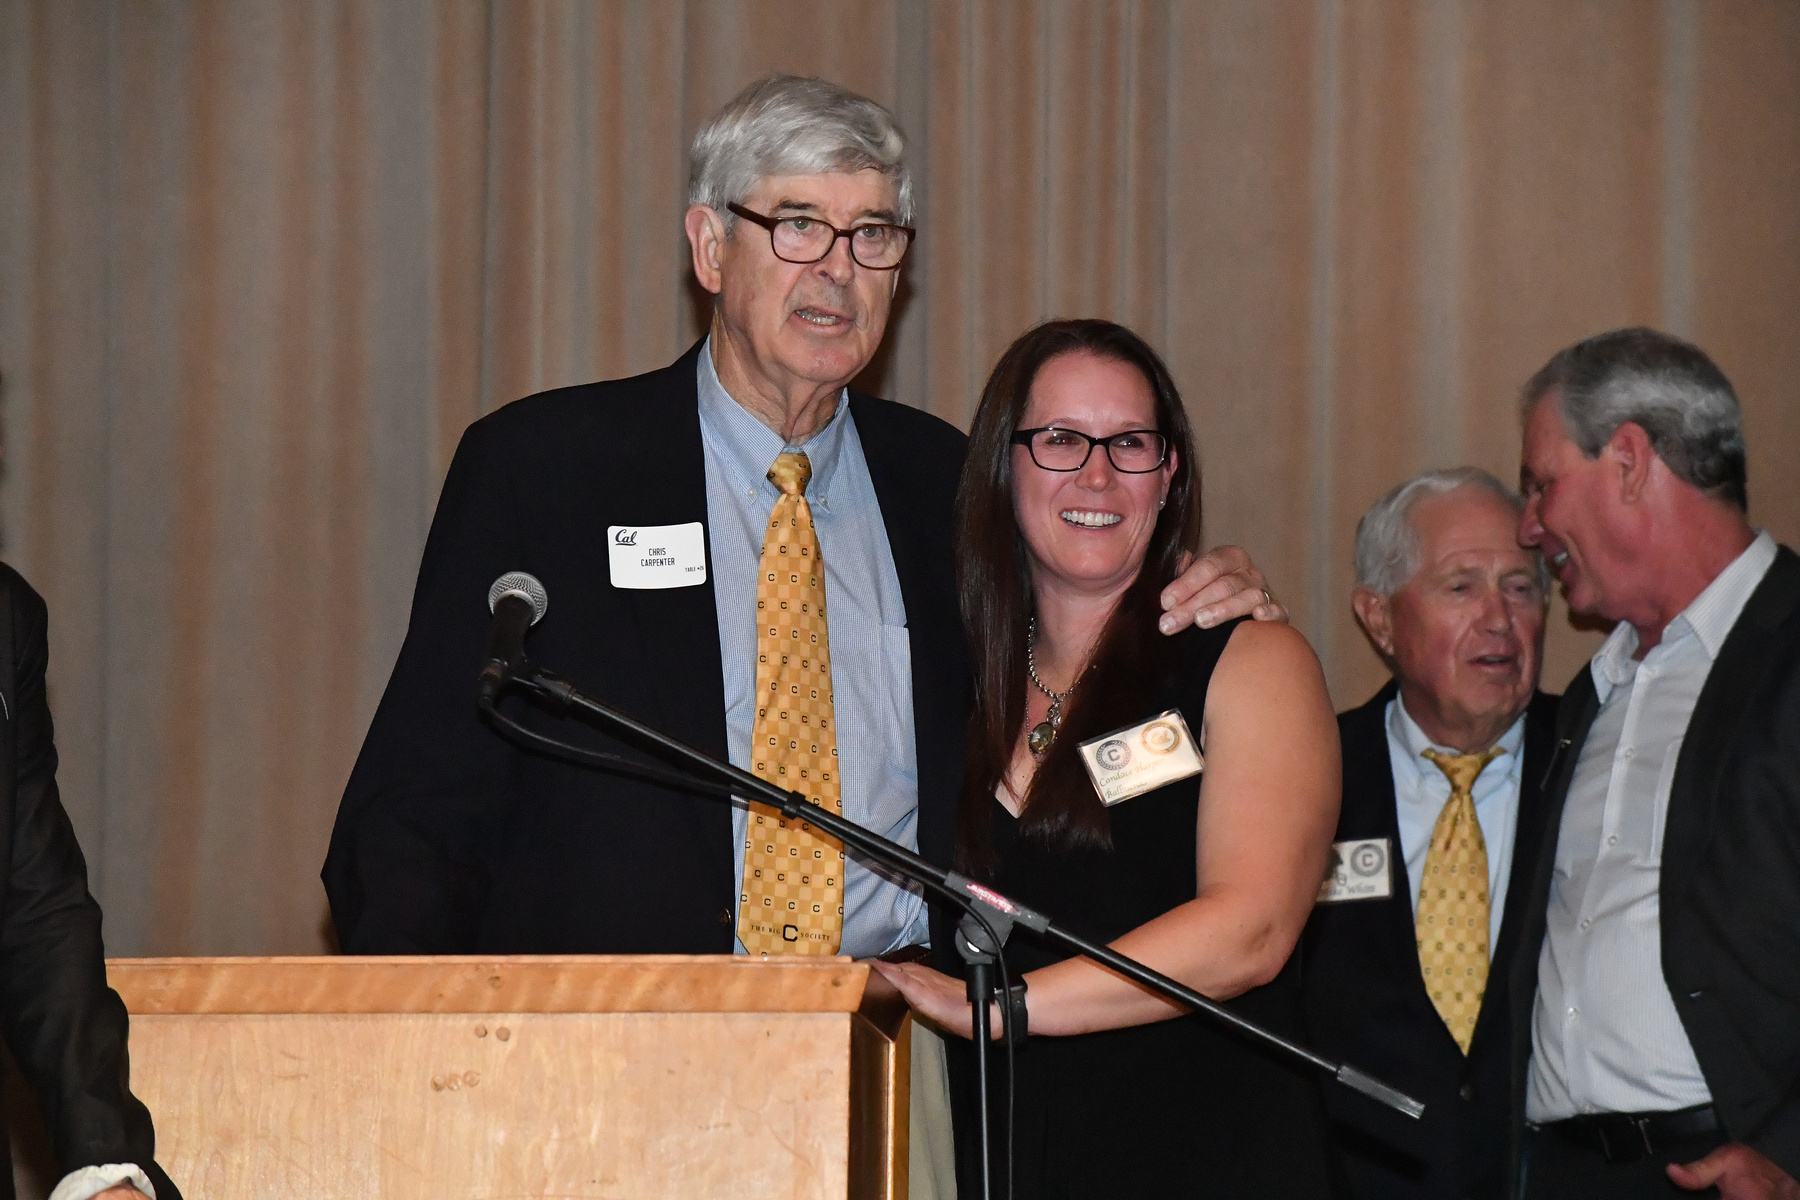 2018 Cal Hall of Fame ceremony _20181026_191024_MarcusE-(ZF-0861-35620-1-086).jpg